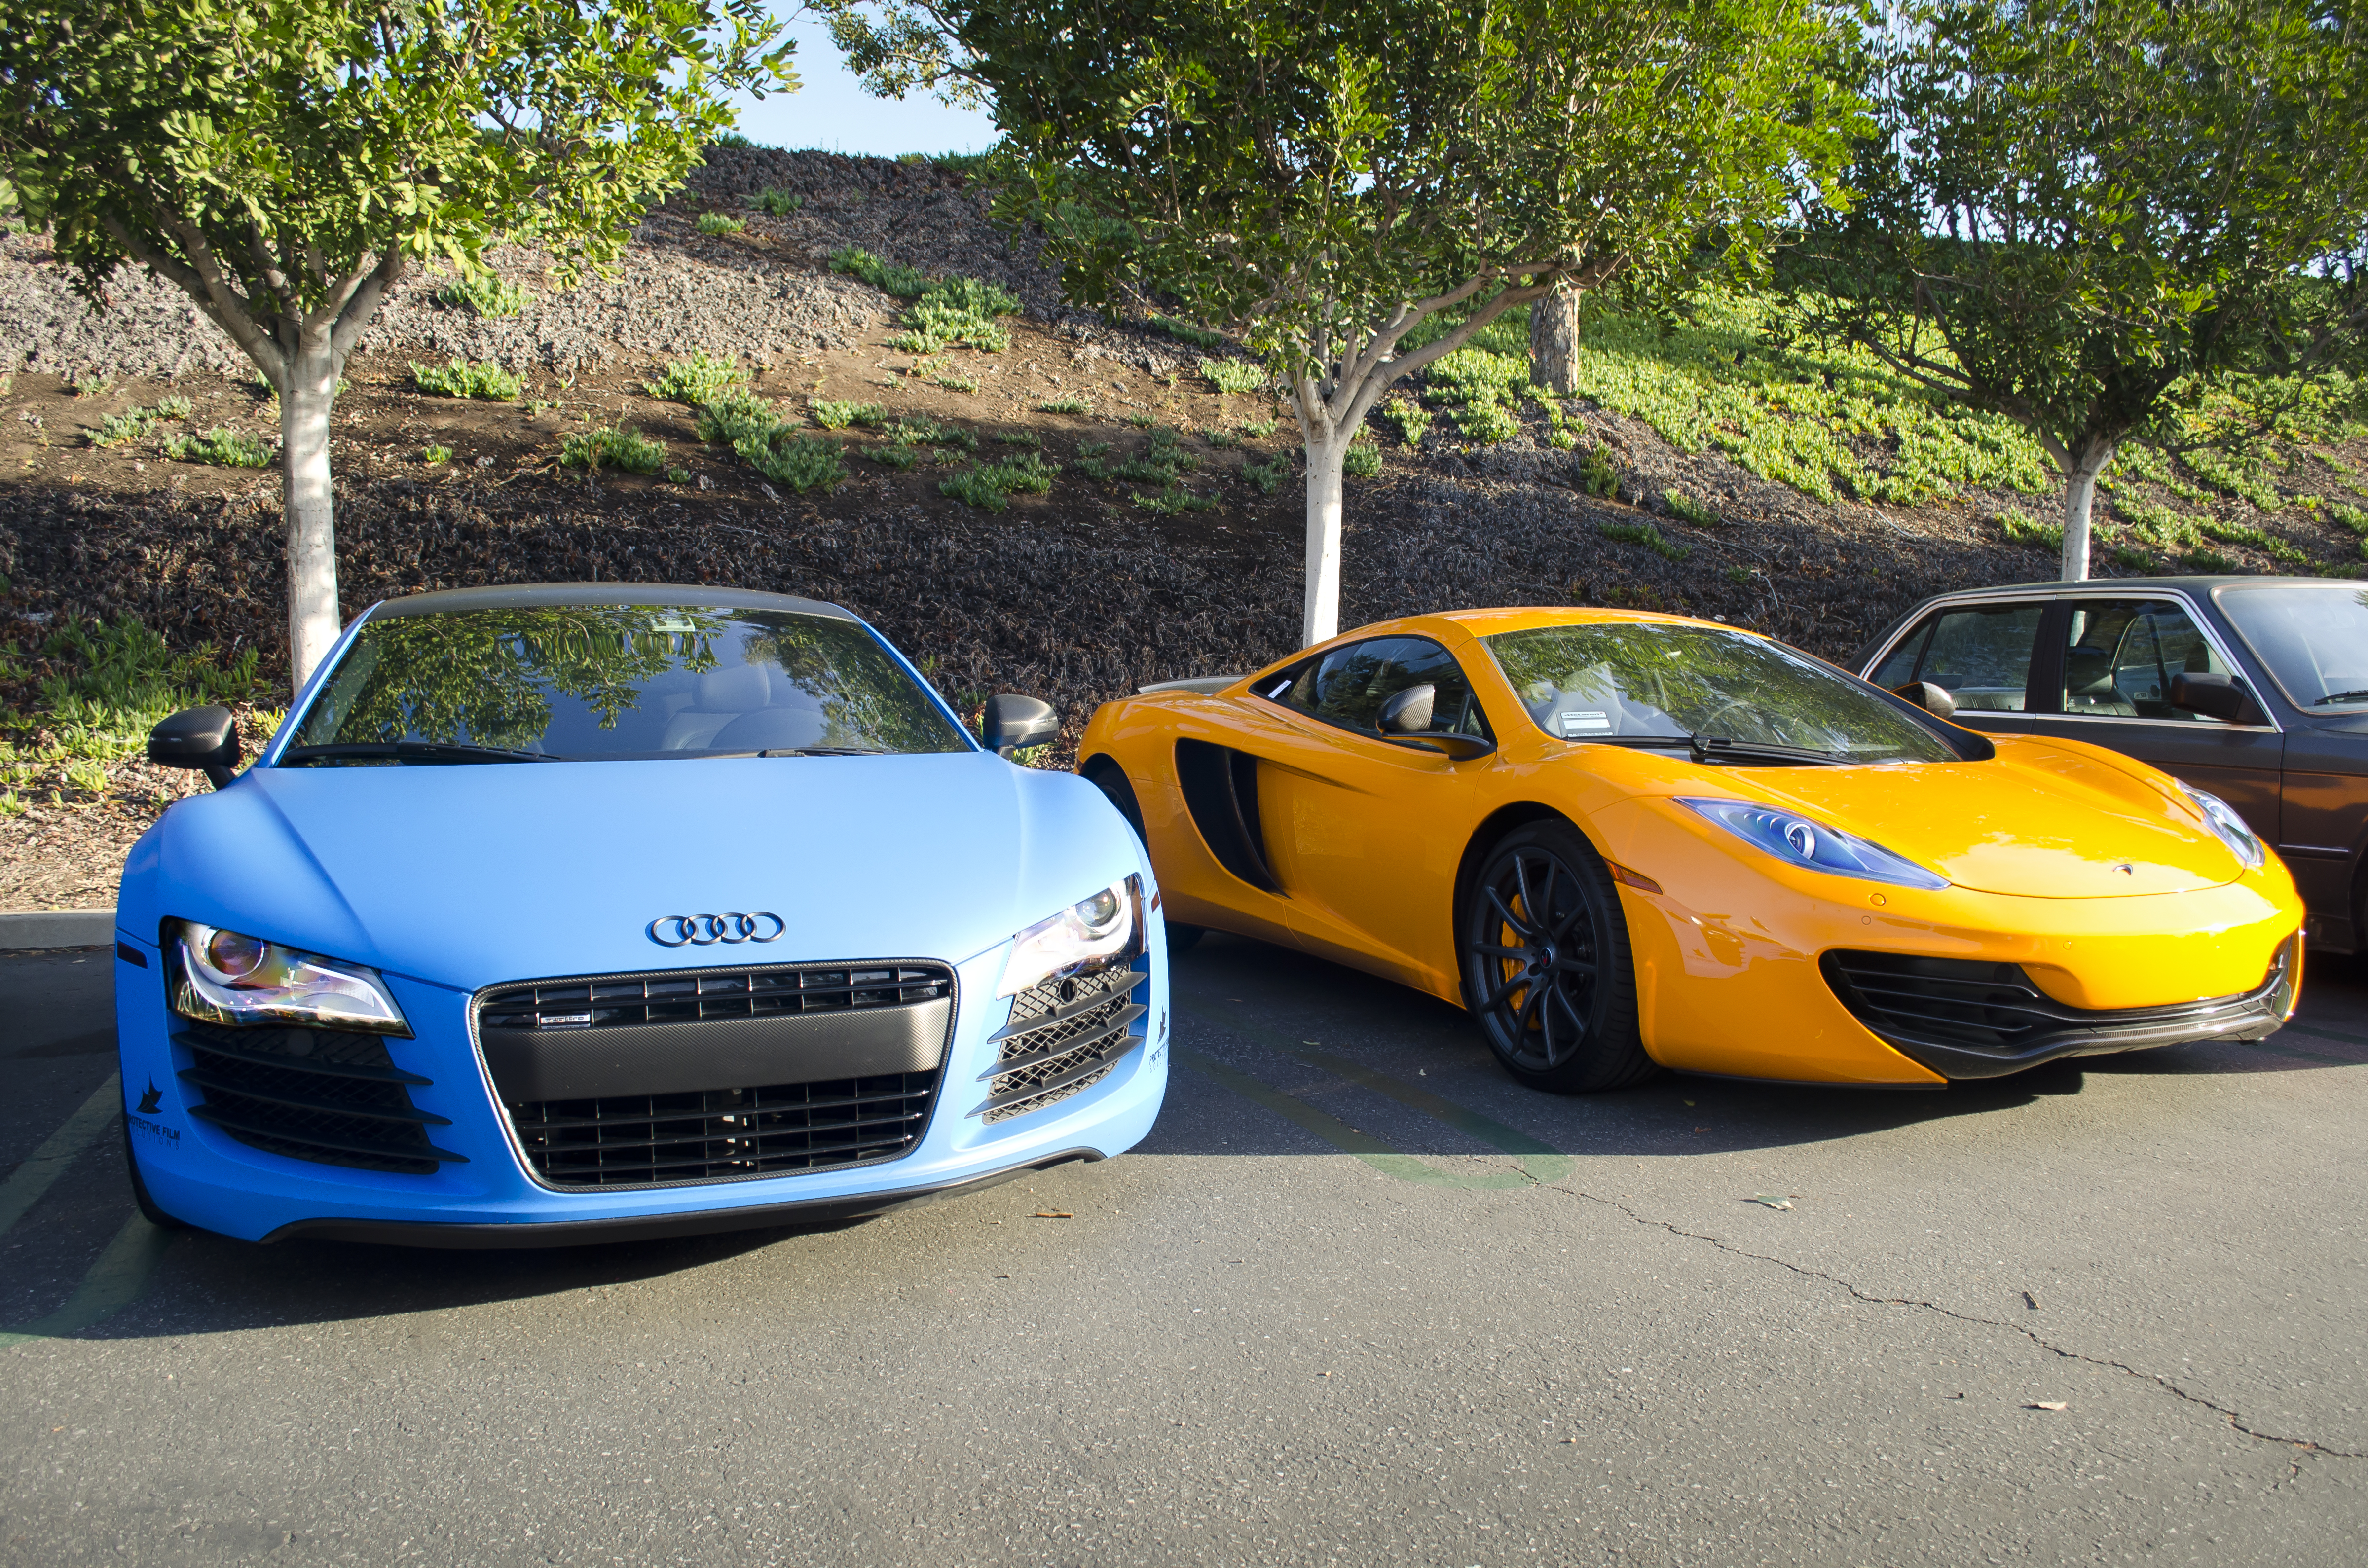 file:matte blue audi r8 and orange mclaren mp4-12c (8666058275)